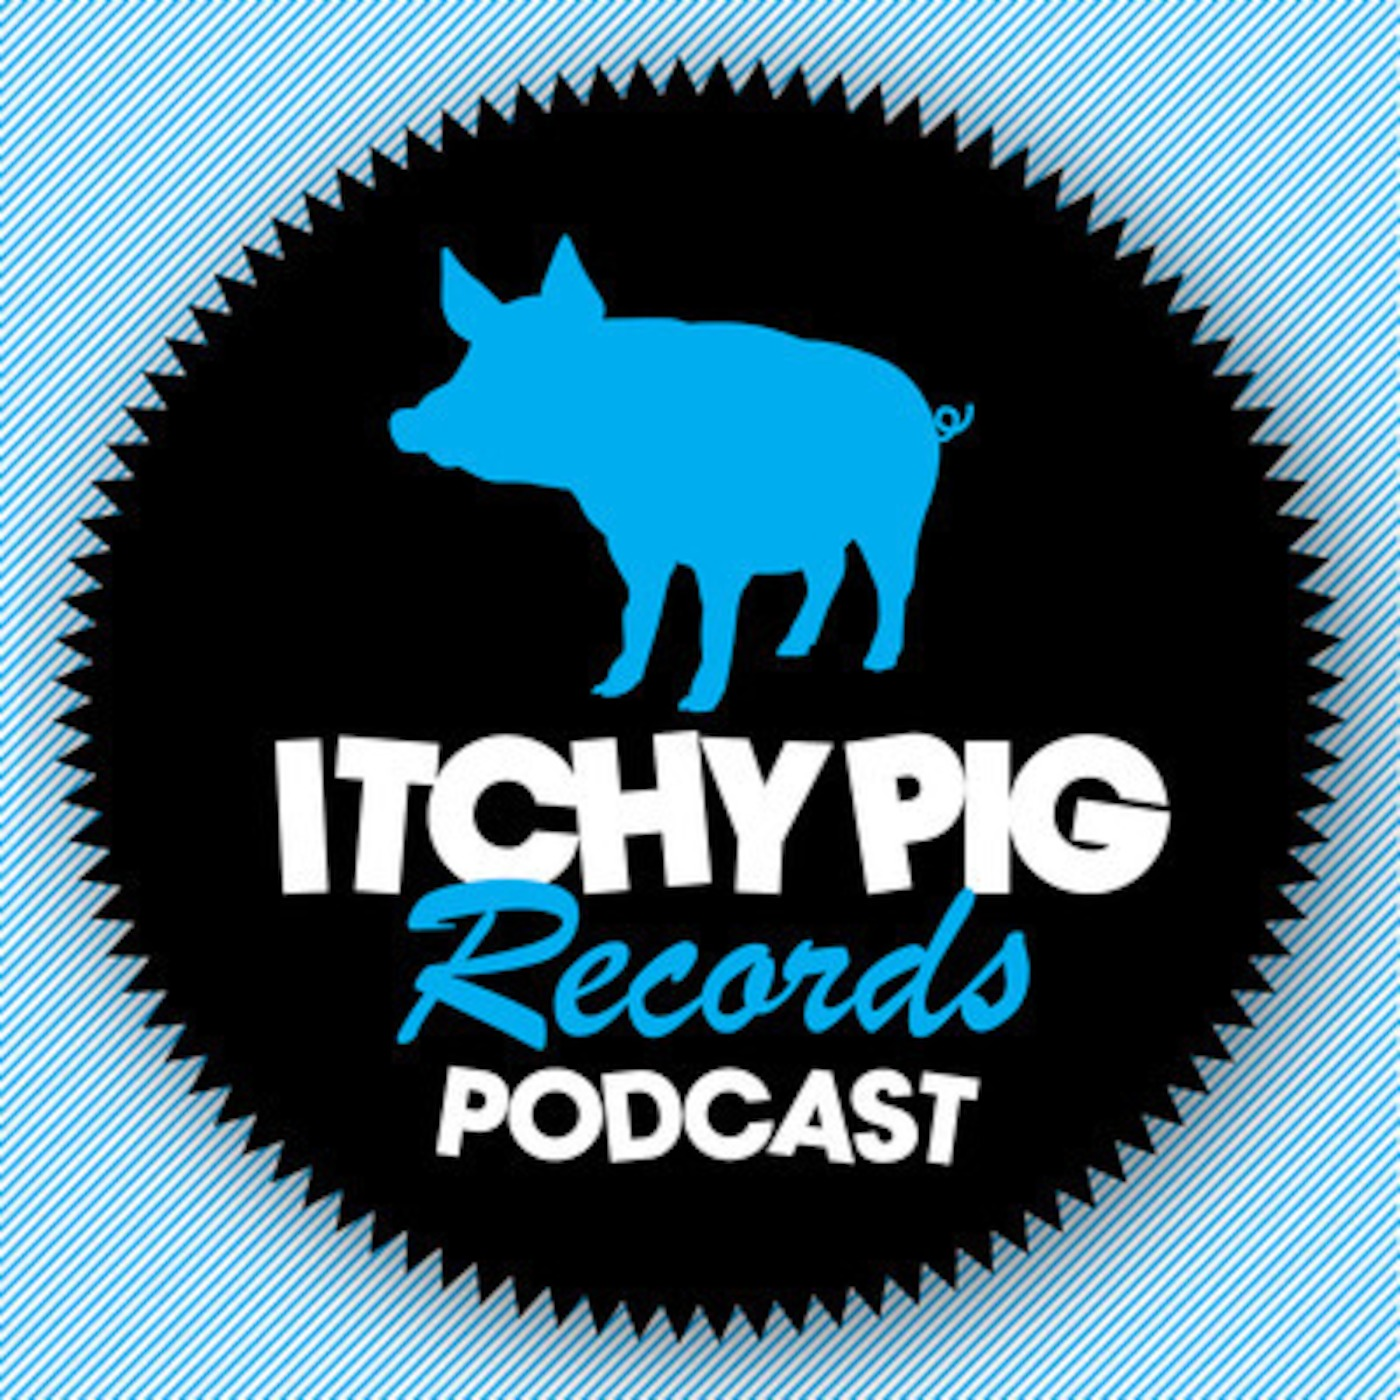 Itchy Pig Records' Podcast